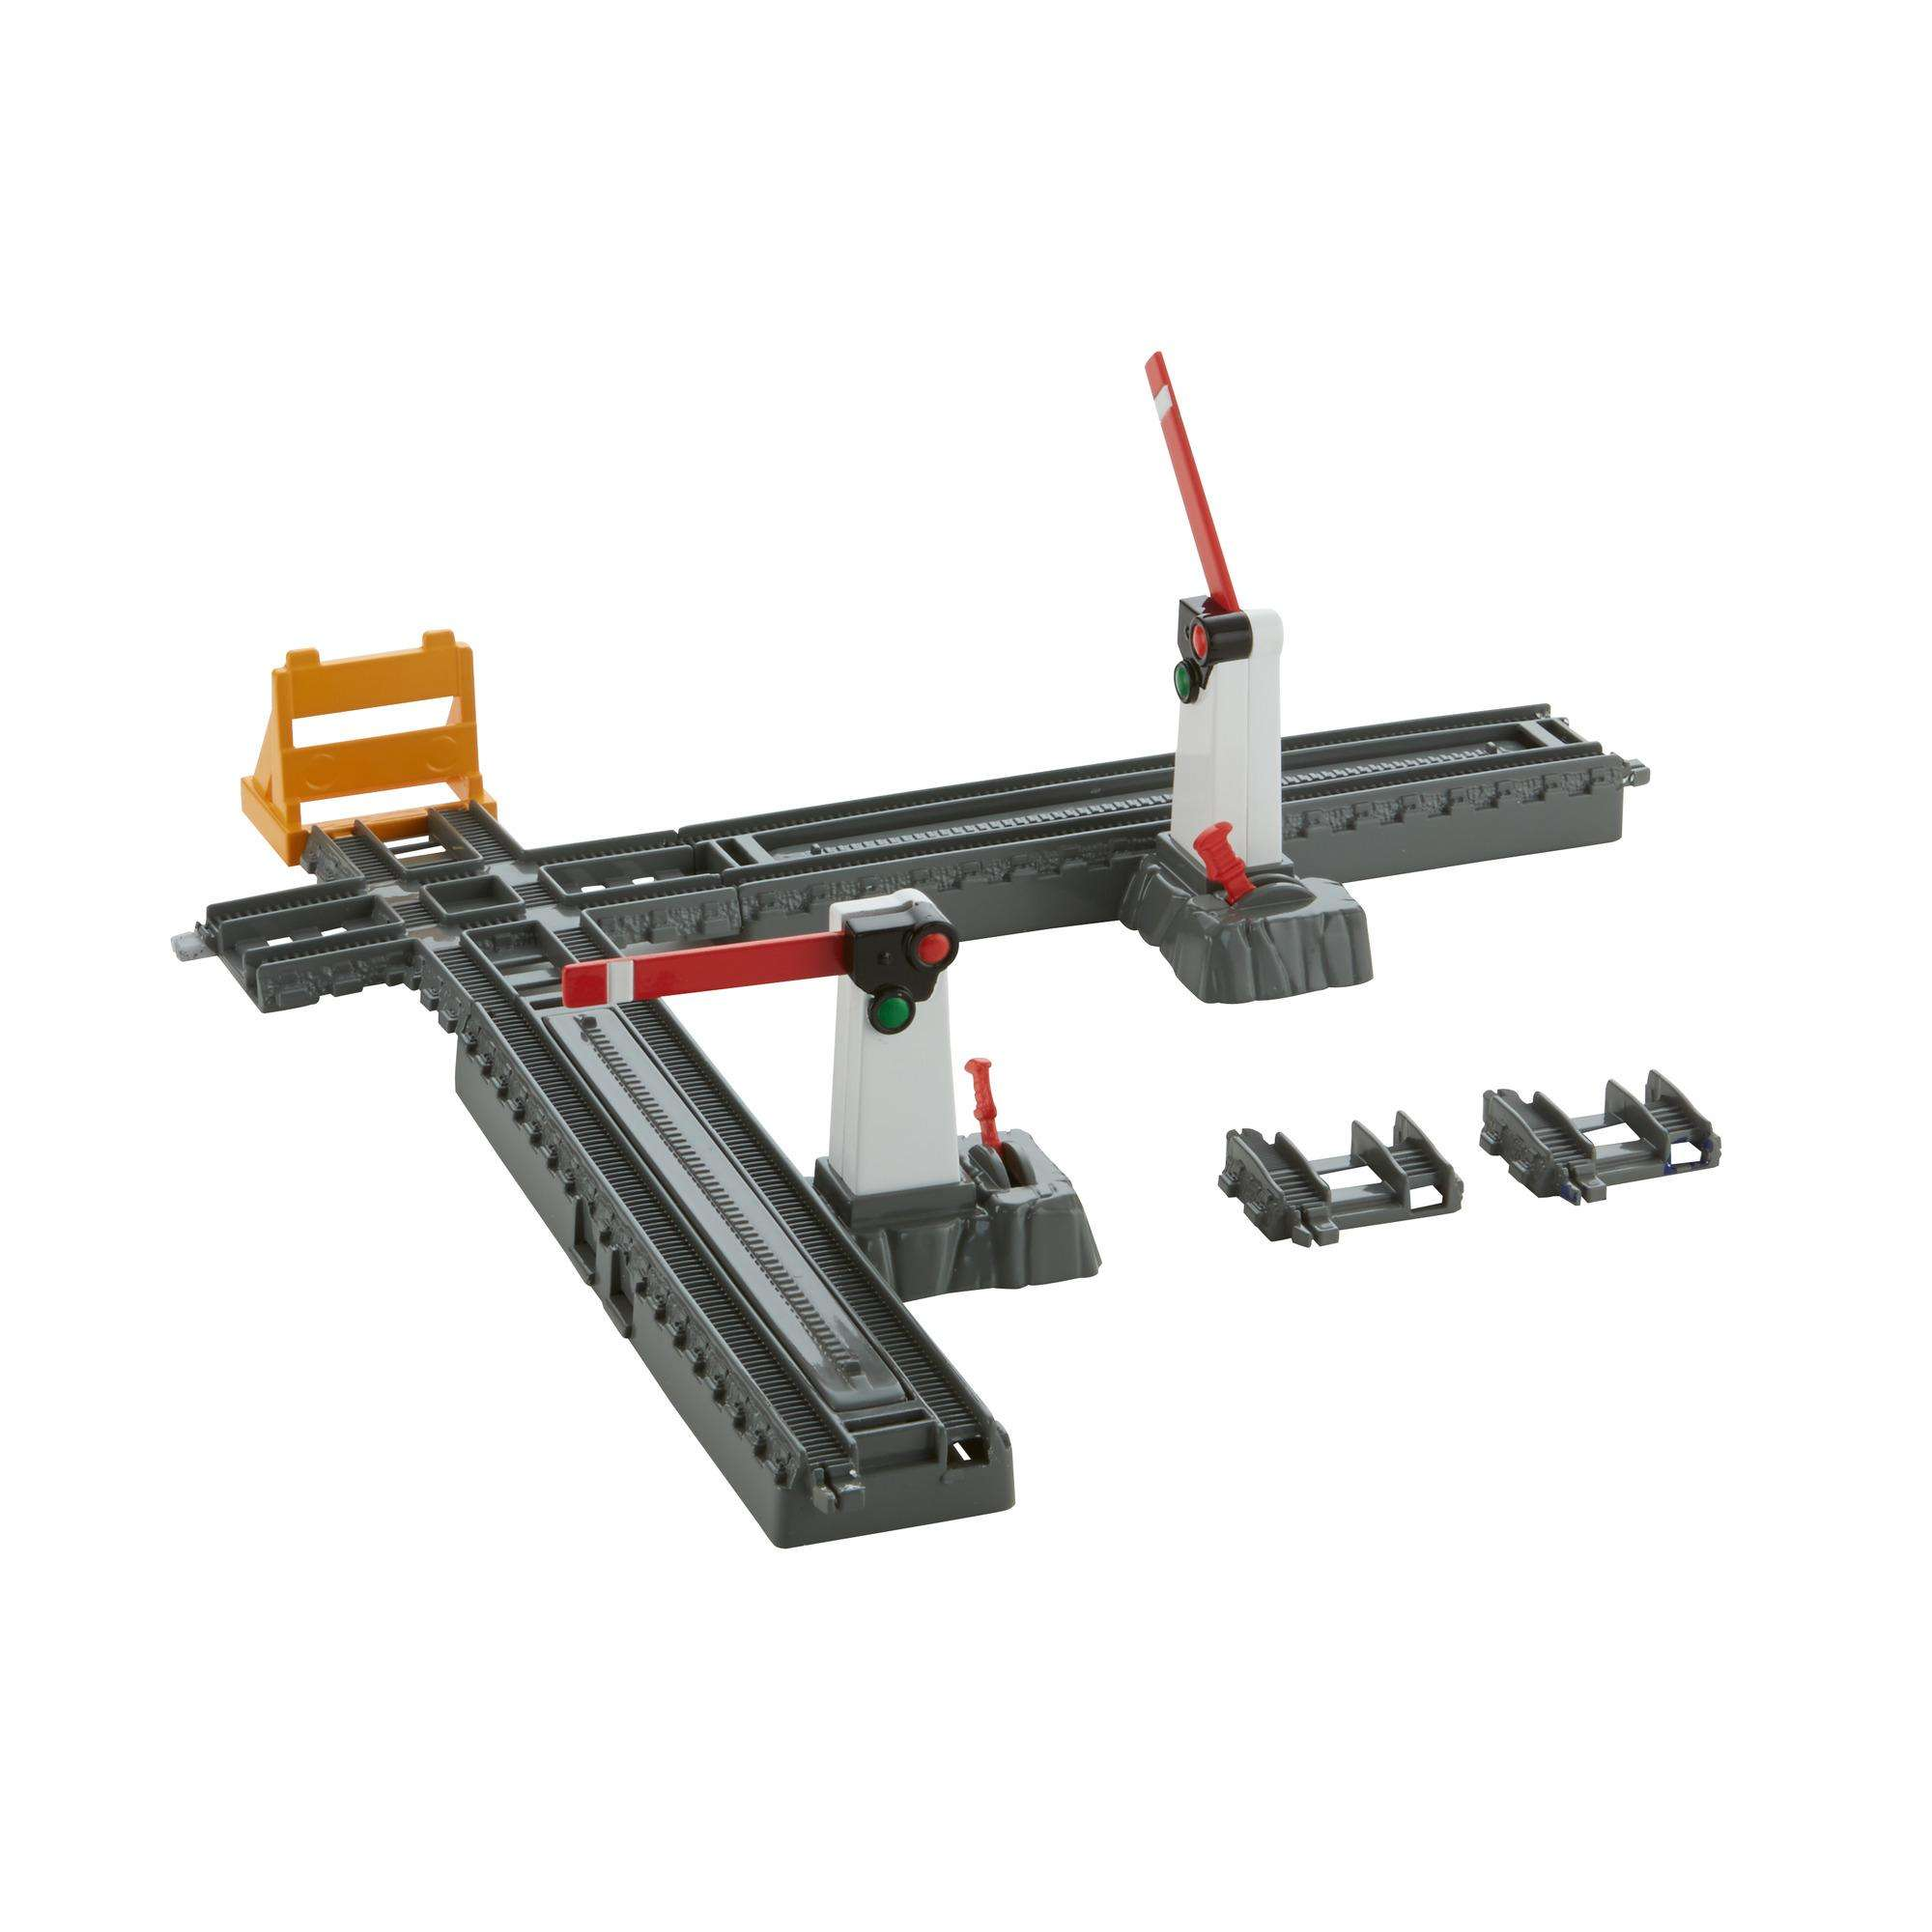 Thomas & Friends TrackMaster Criss-Cross Junction